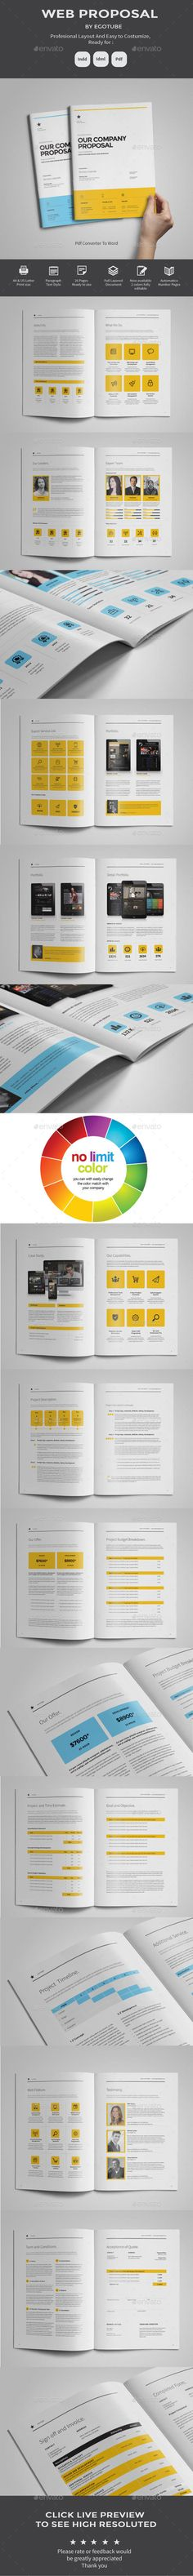 Indesign Business Proposal Template Template Pinterest - proposal templates